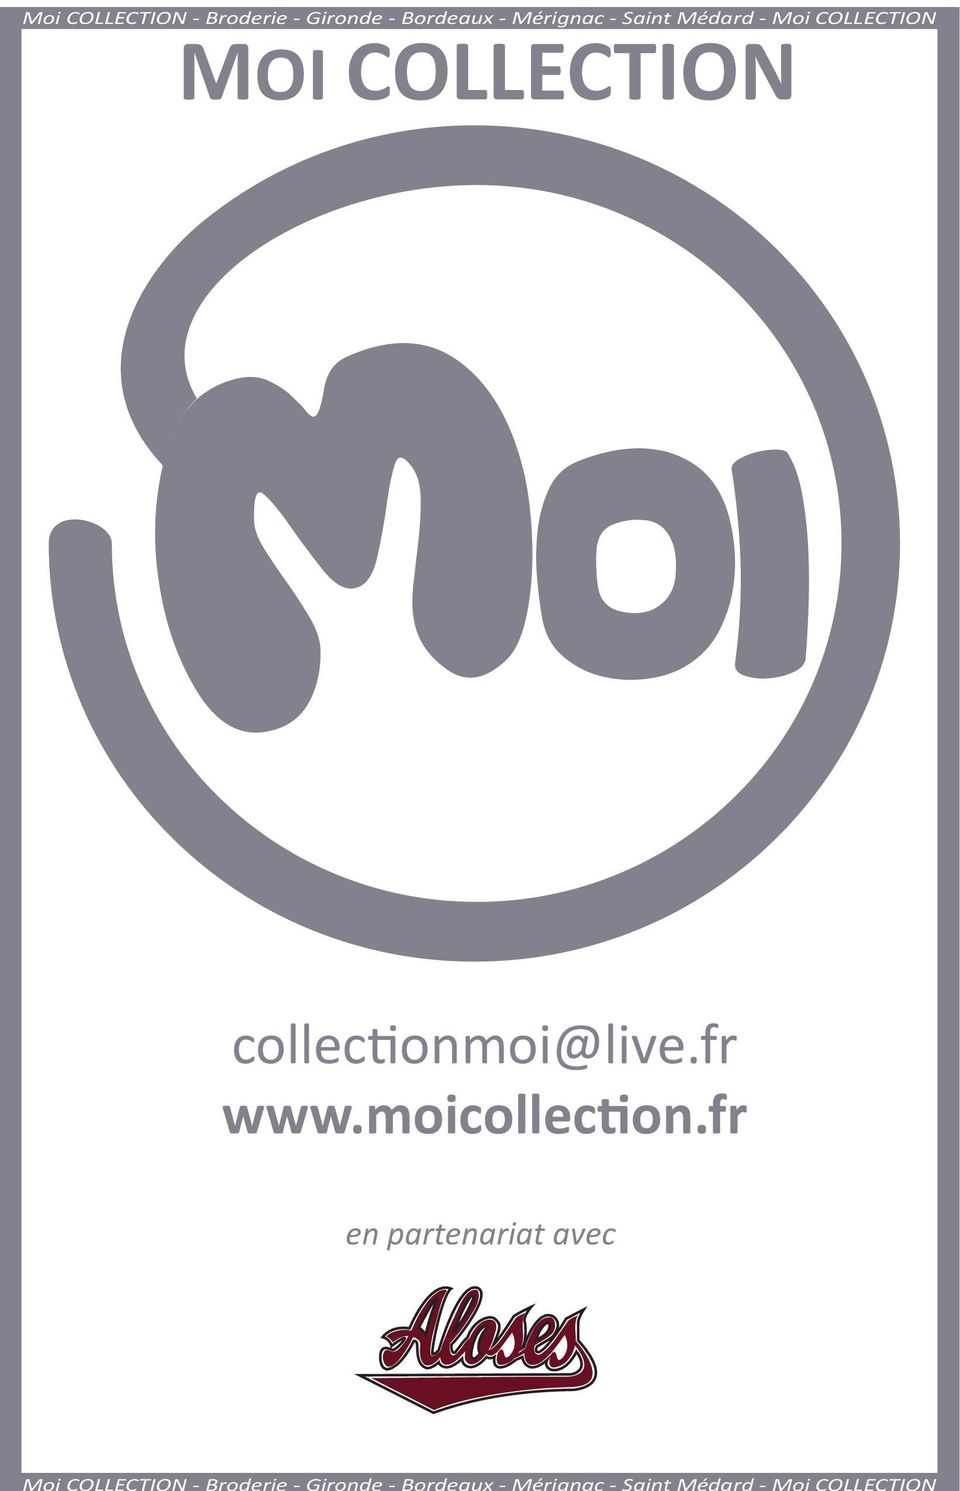 fr www.moicollection.